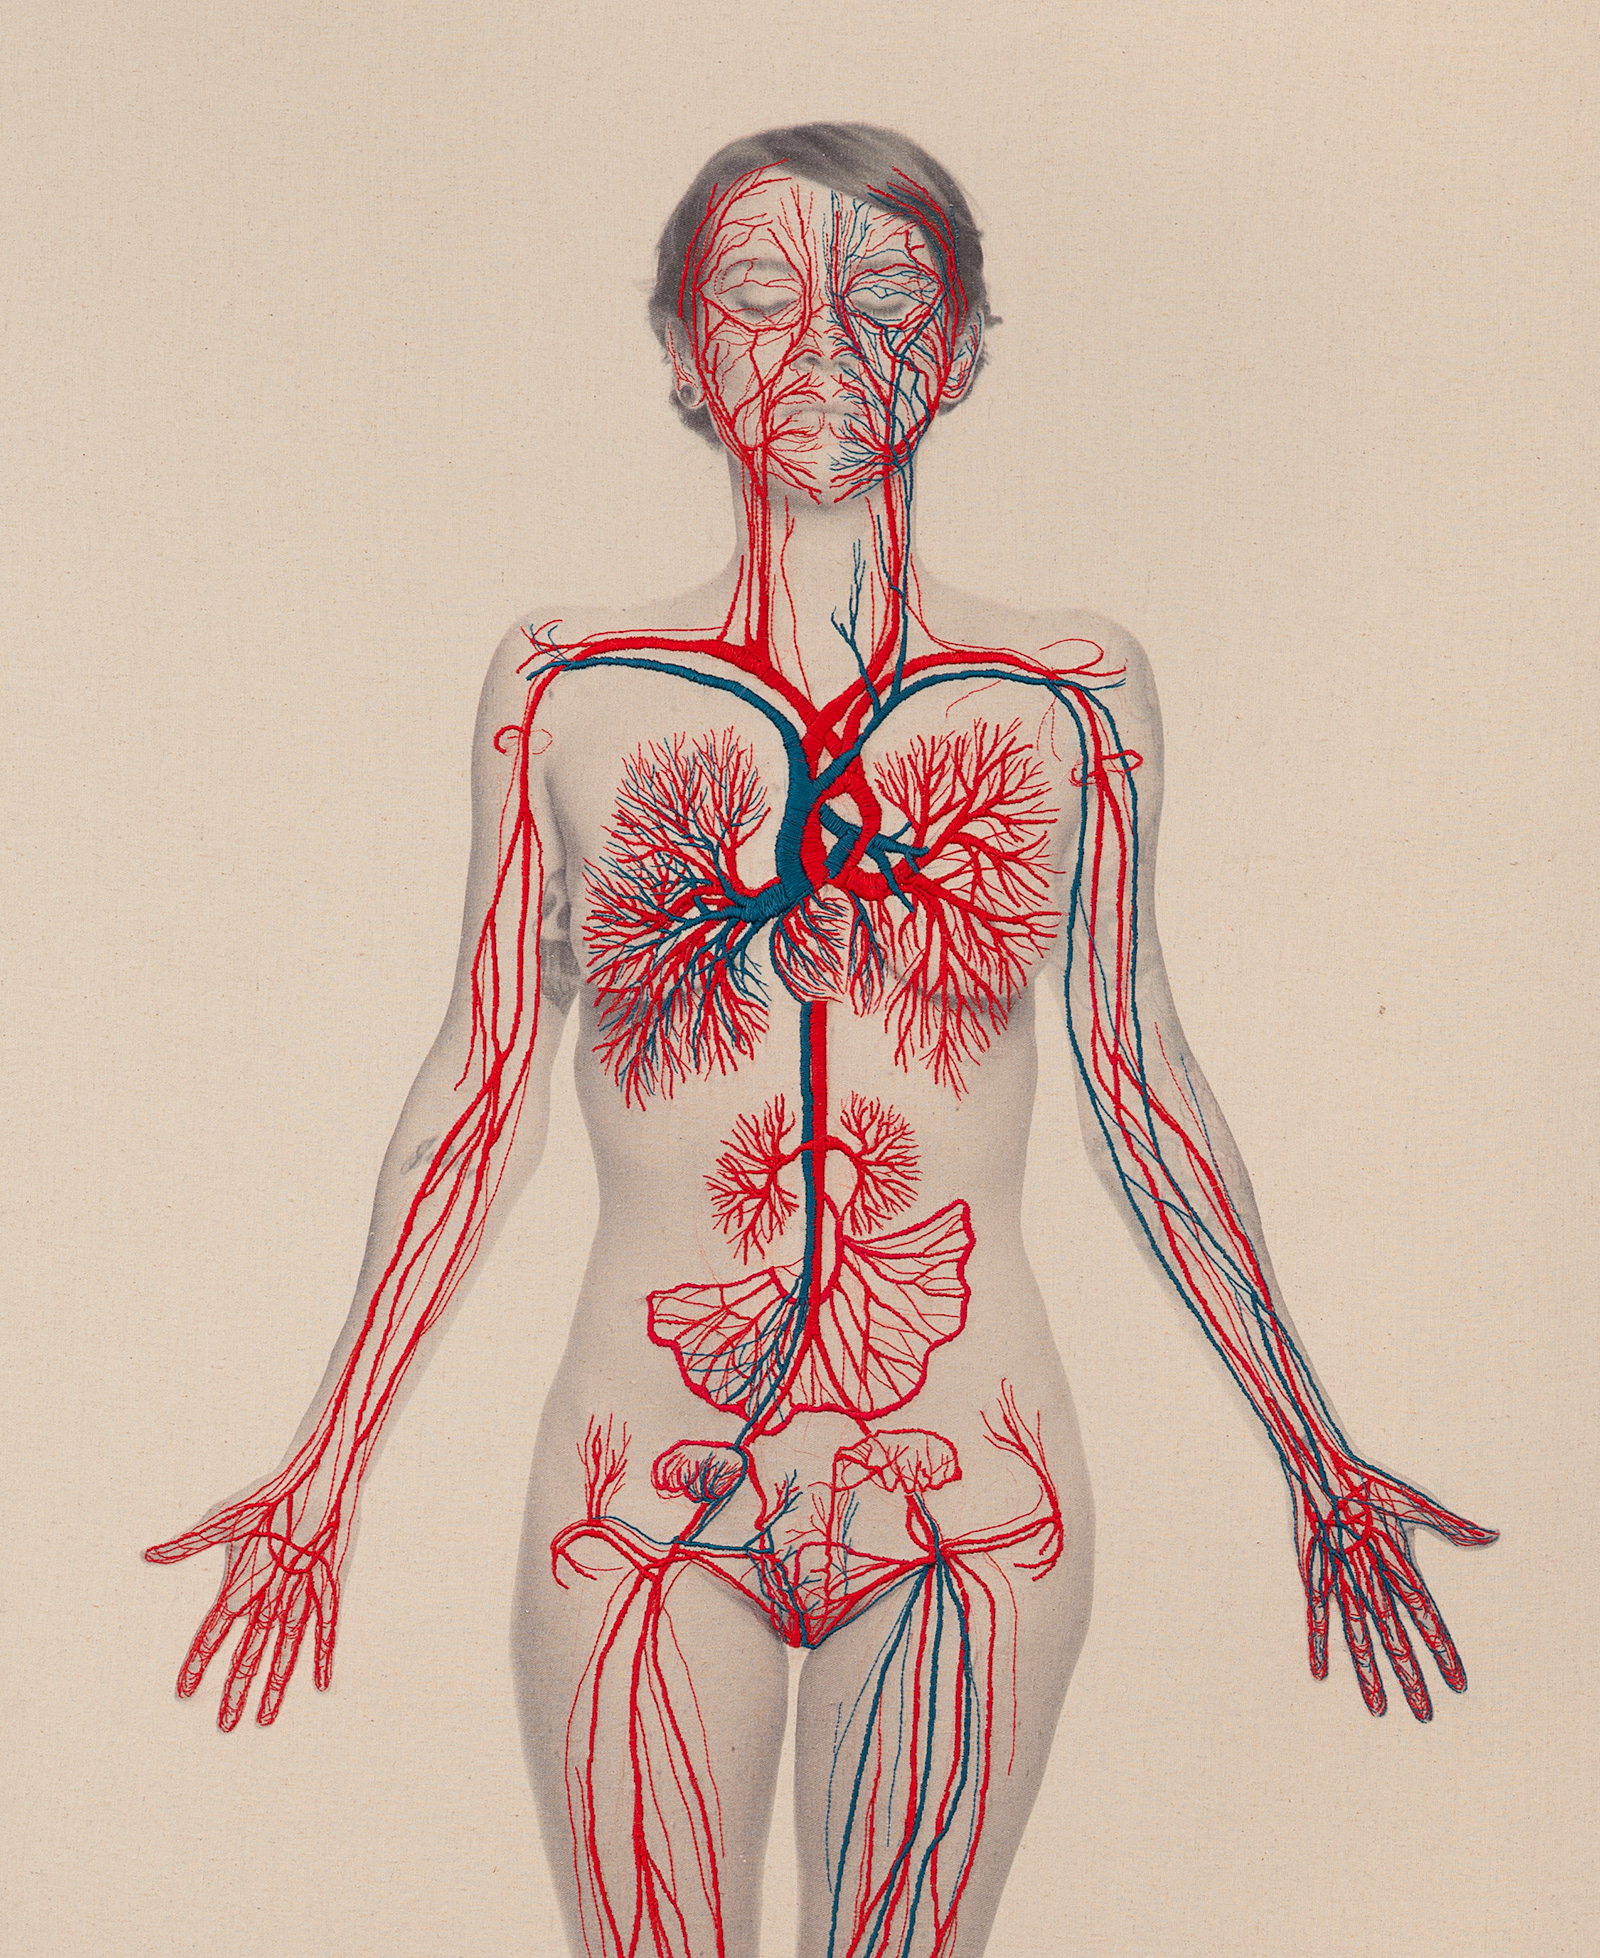 Intricately Embroidered Self Portraits Explore Anatomy And Physics